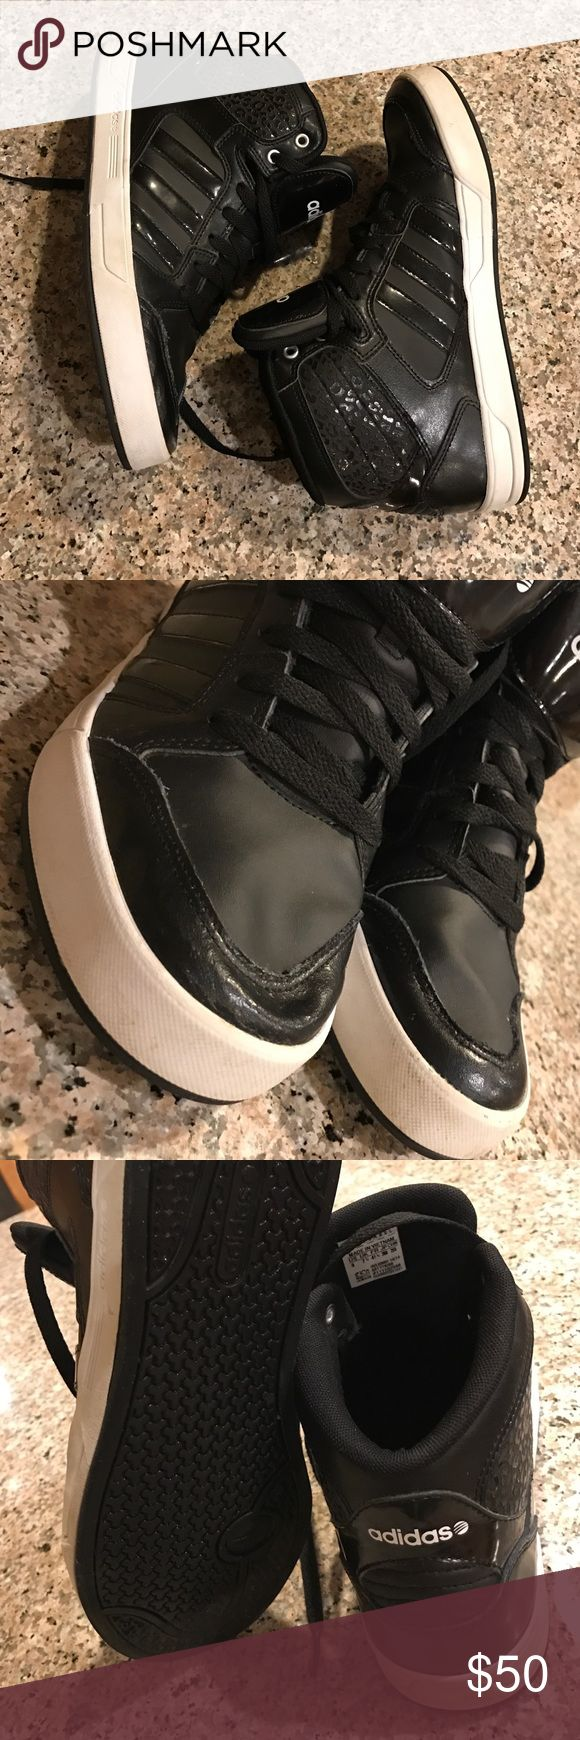 Adidas Neo Raleigh high tops Women's size 9 black Sporty high top basketball style shoe great for street style with jeans, black leggings, or bodycon dress! Overlay accent, white logo, leather upper, rubber sole. Women's size 9 Adidas Shoes Athletic Shoes